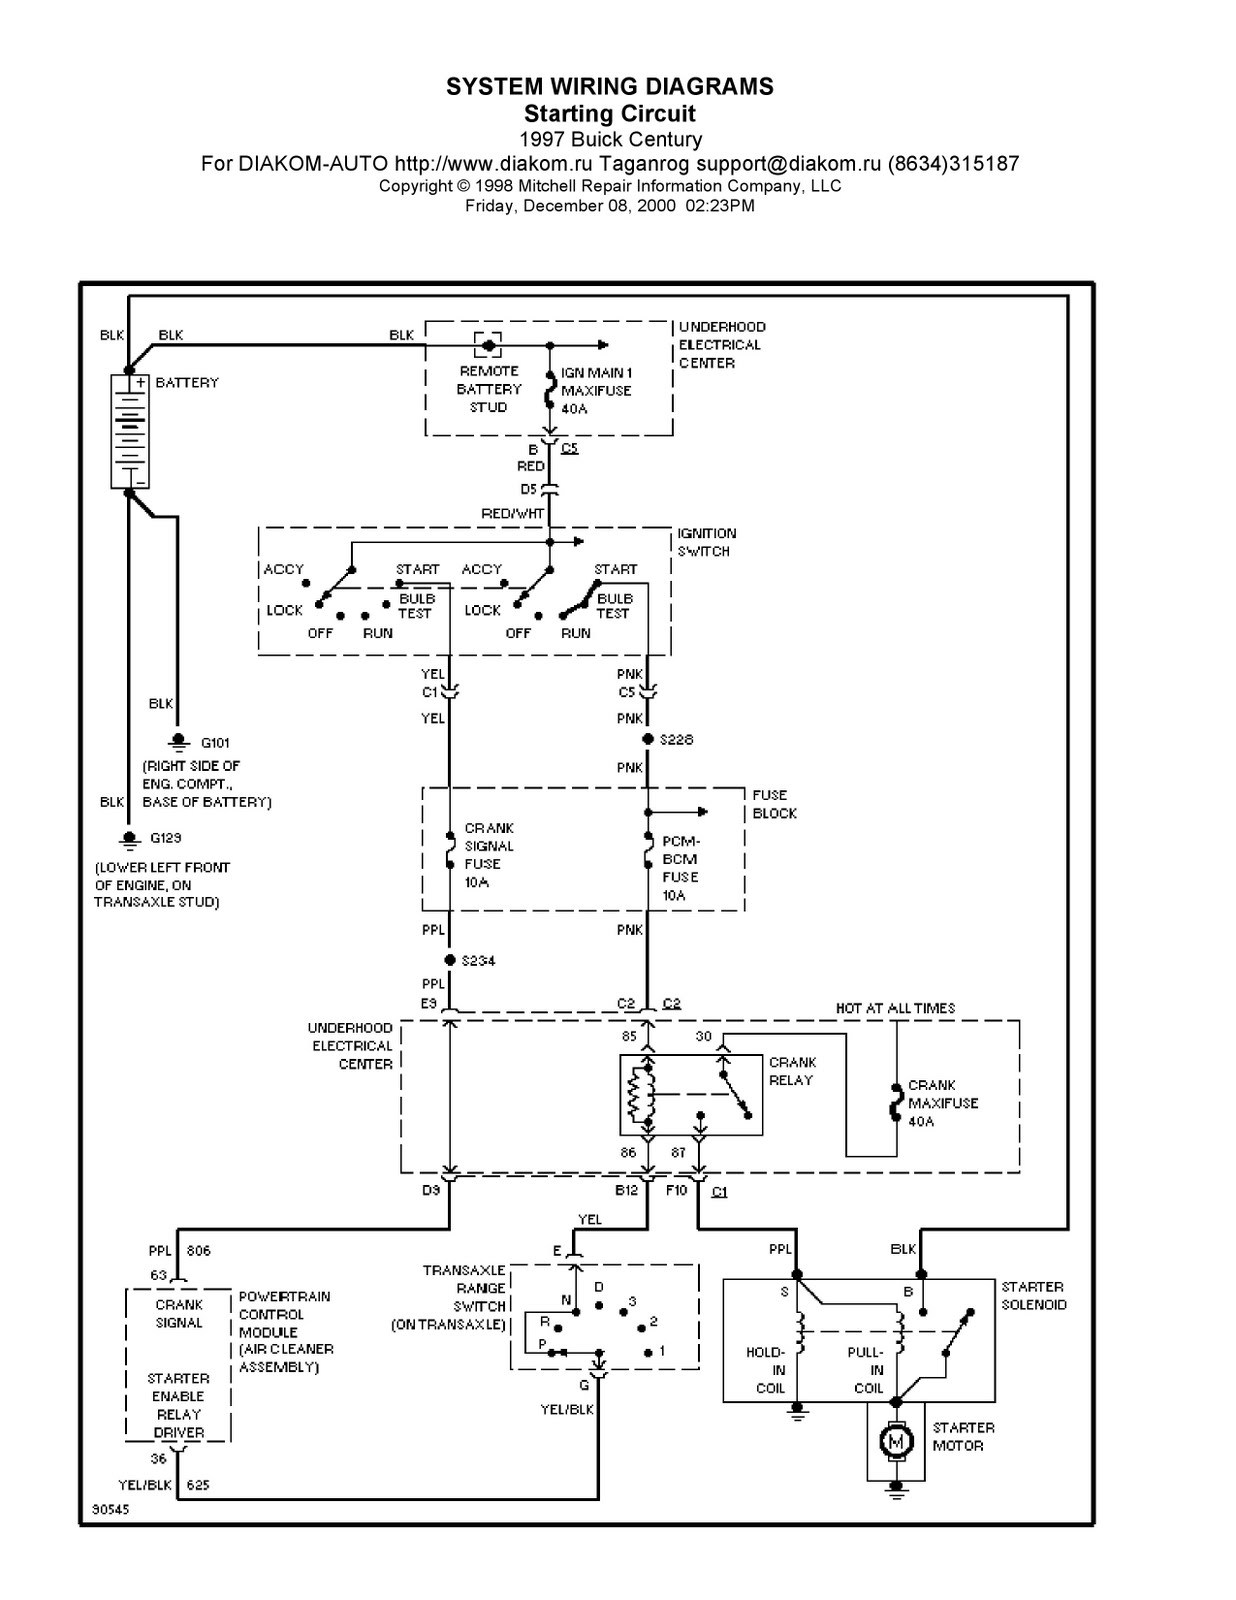 1997 Buick Century System Wiring Diagram Starting Circuit ...